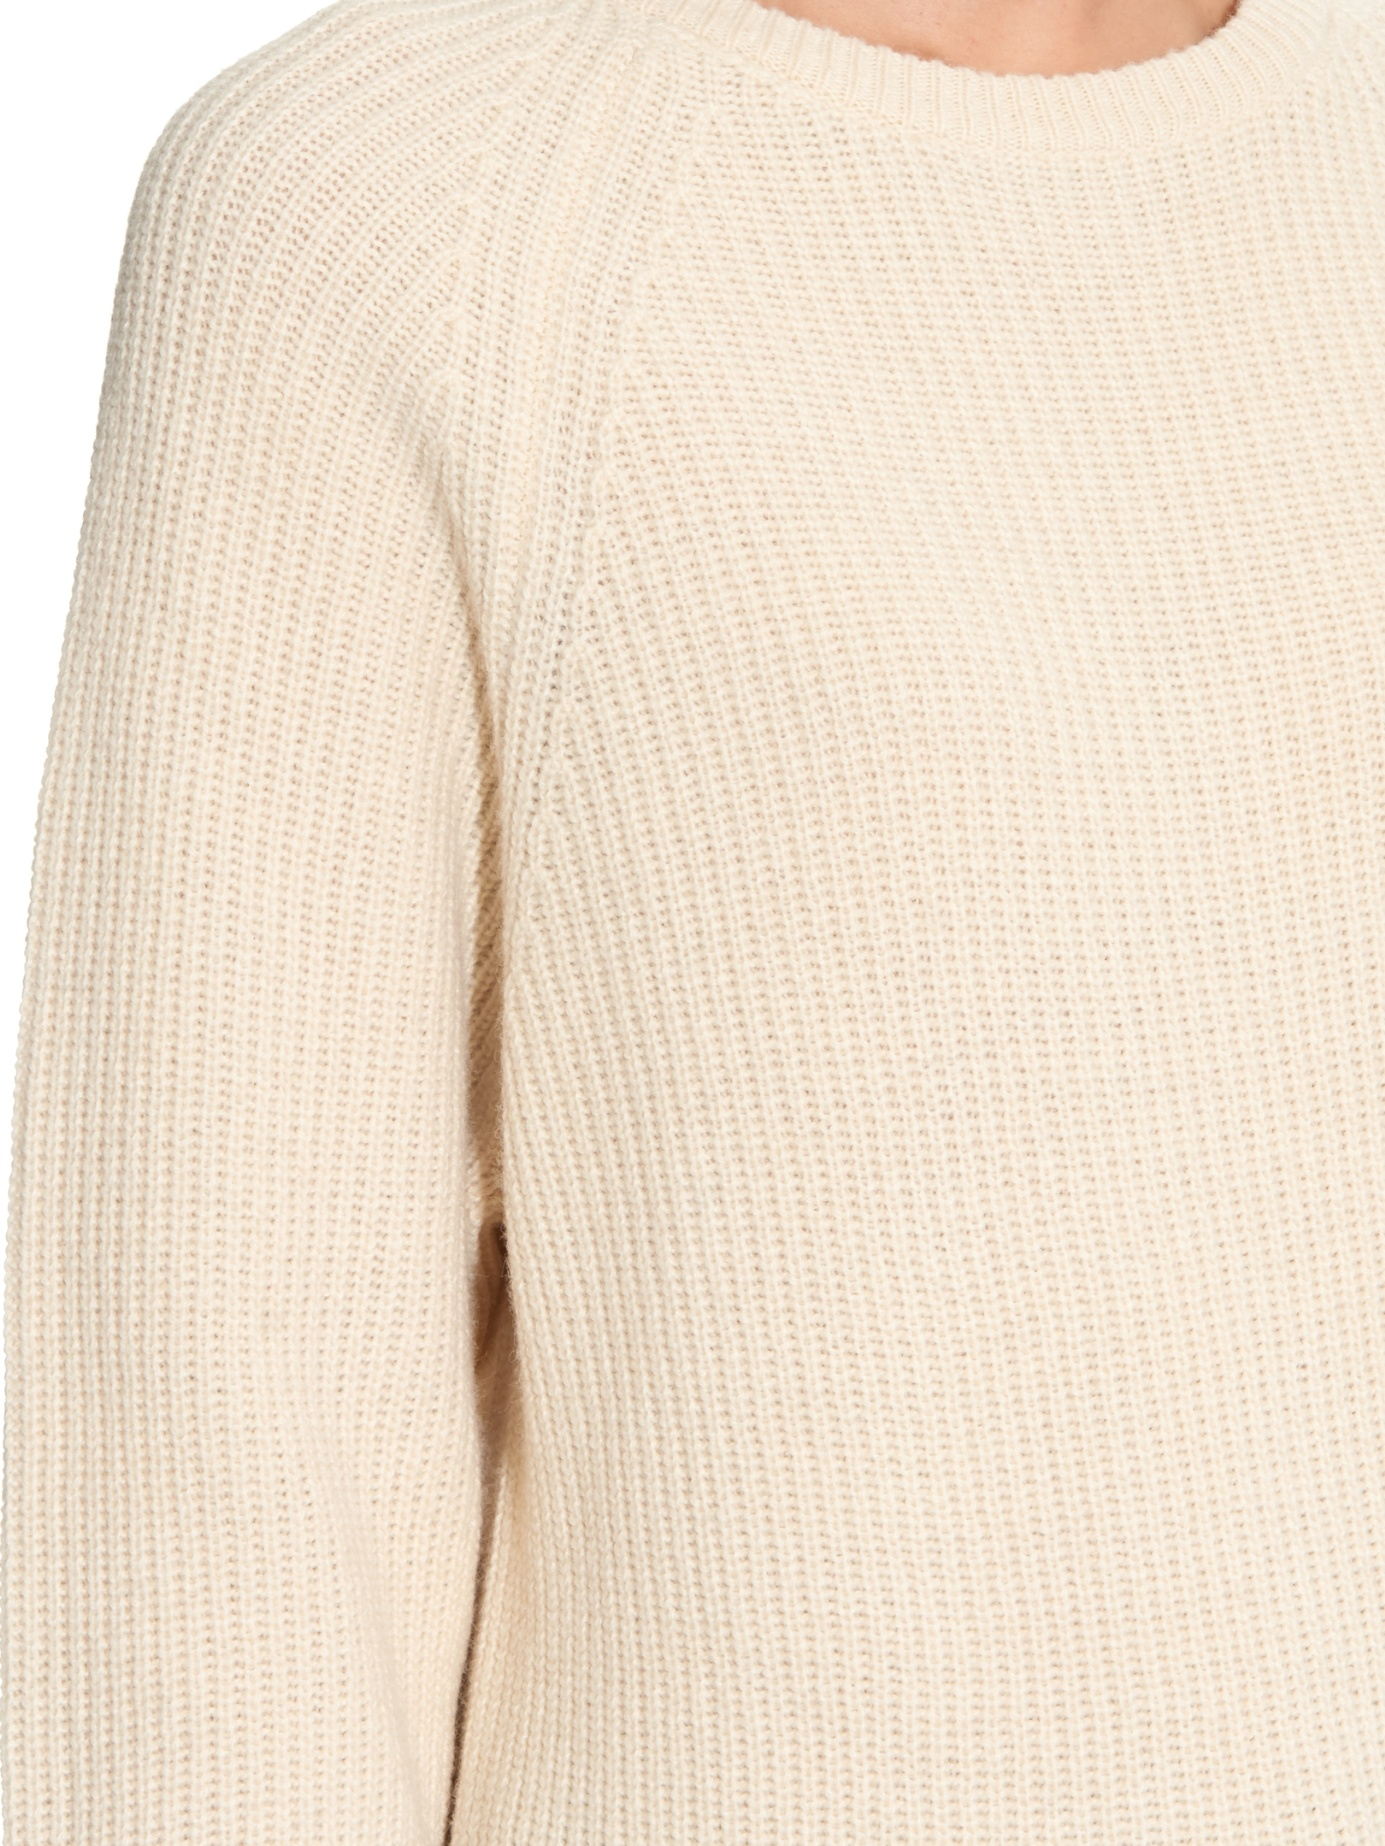 Lemaire Ribbed-knit Wool Sweater in Natural | Lyst